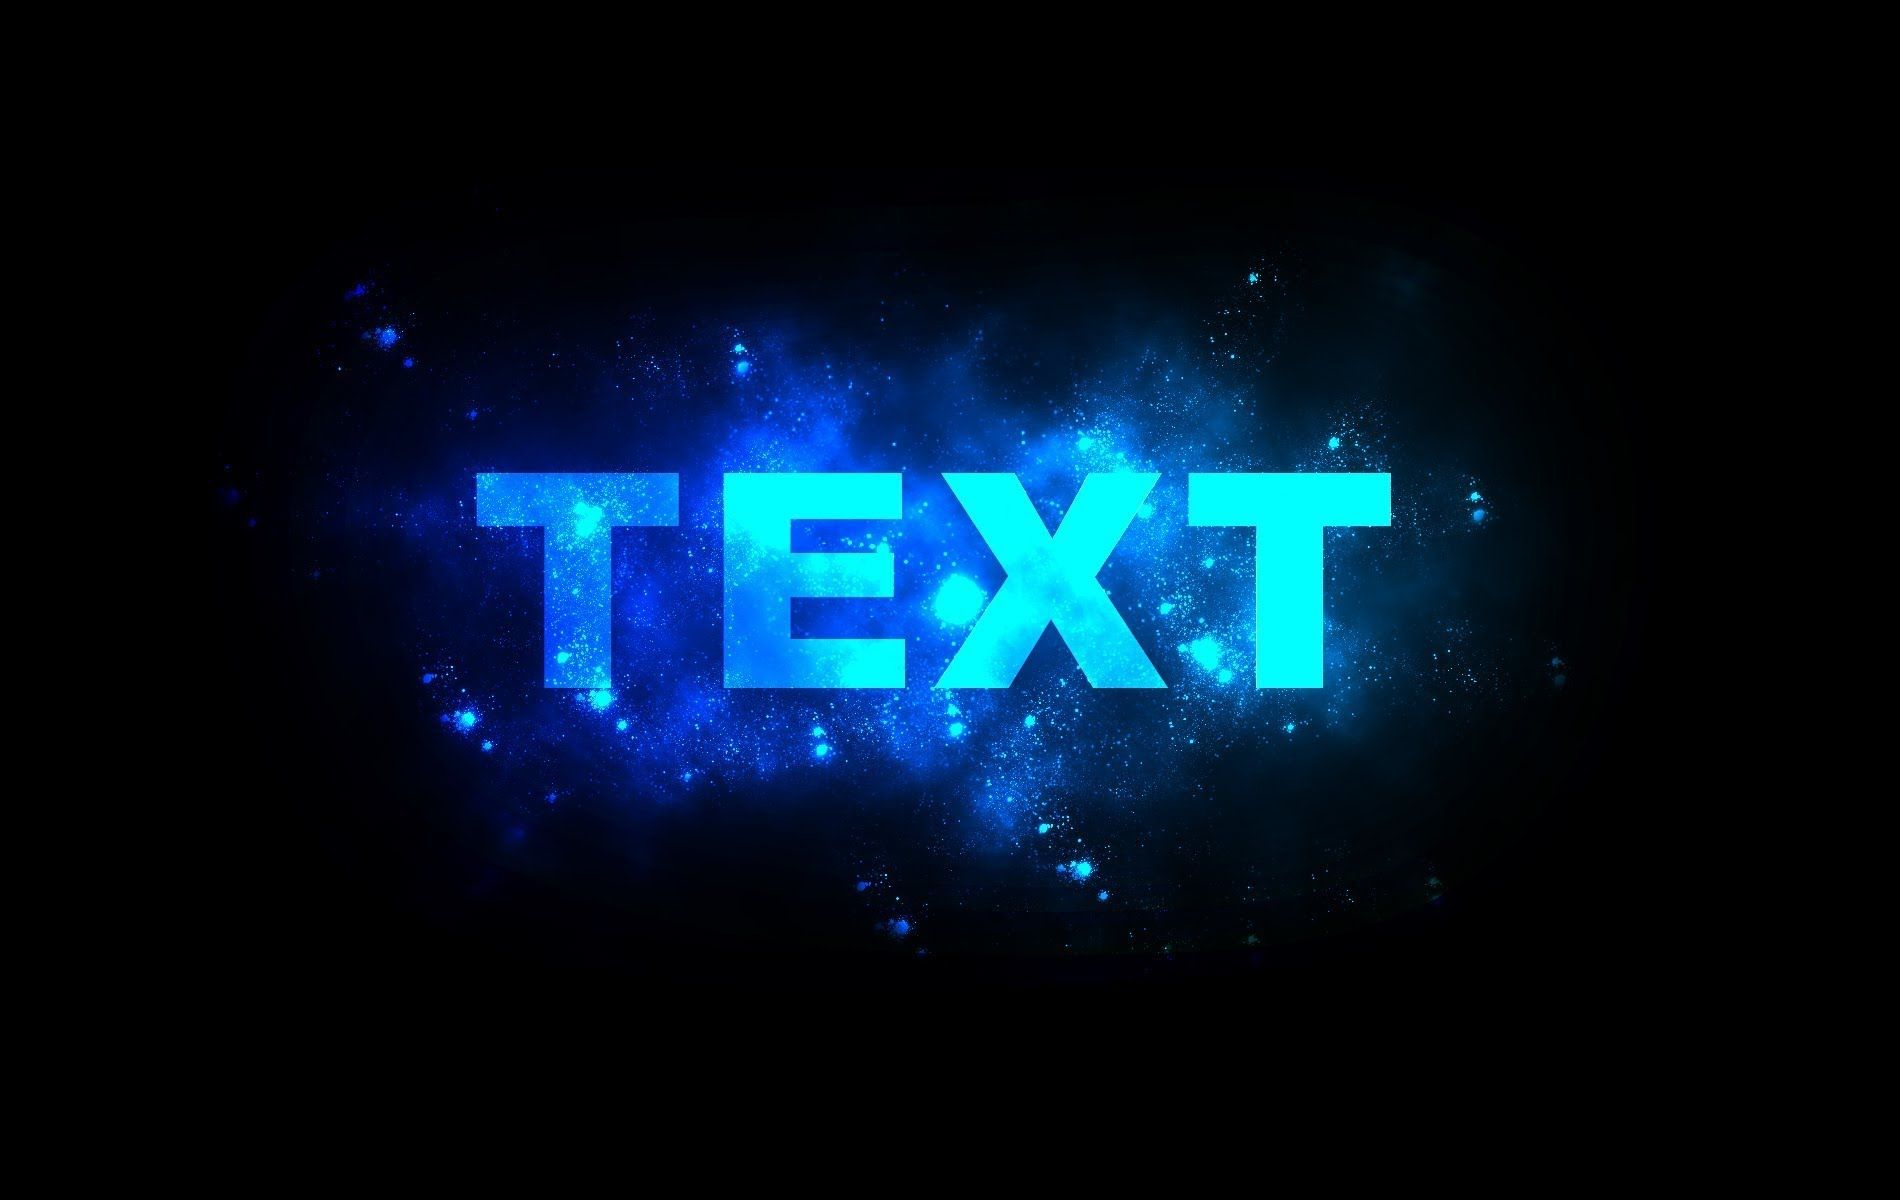 How to make glowing text in photoshop cs6 or cc graphic design how to make glowing text in photoshop cs6 or cc baditri Choice Image